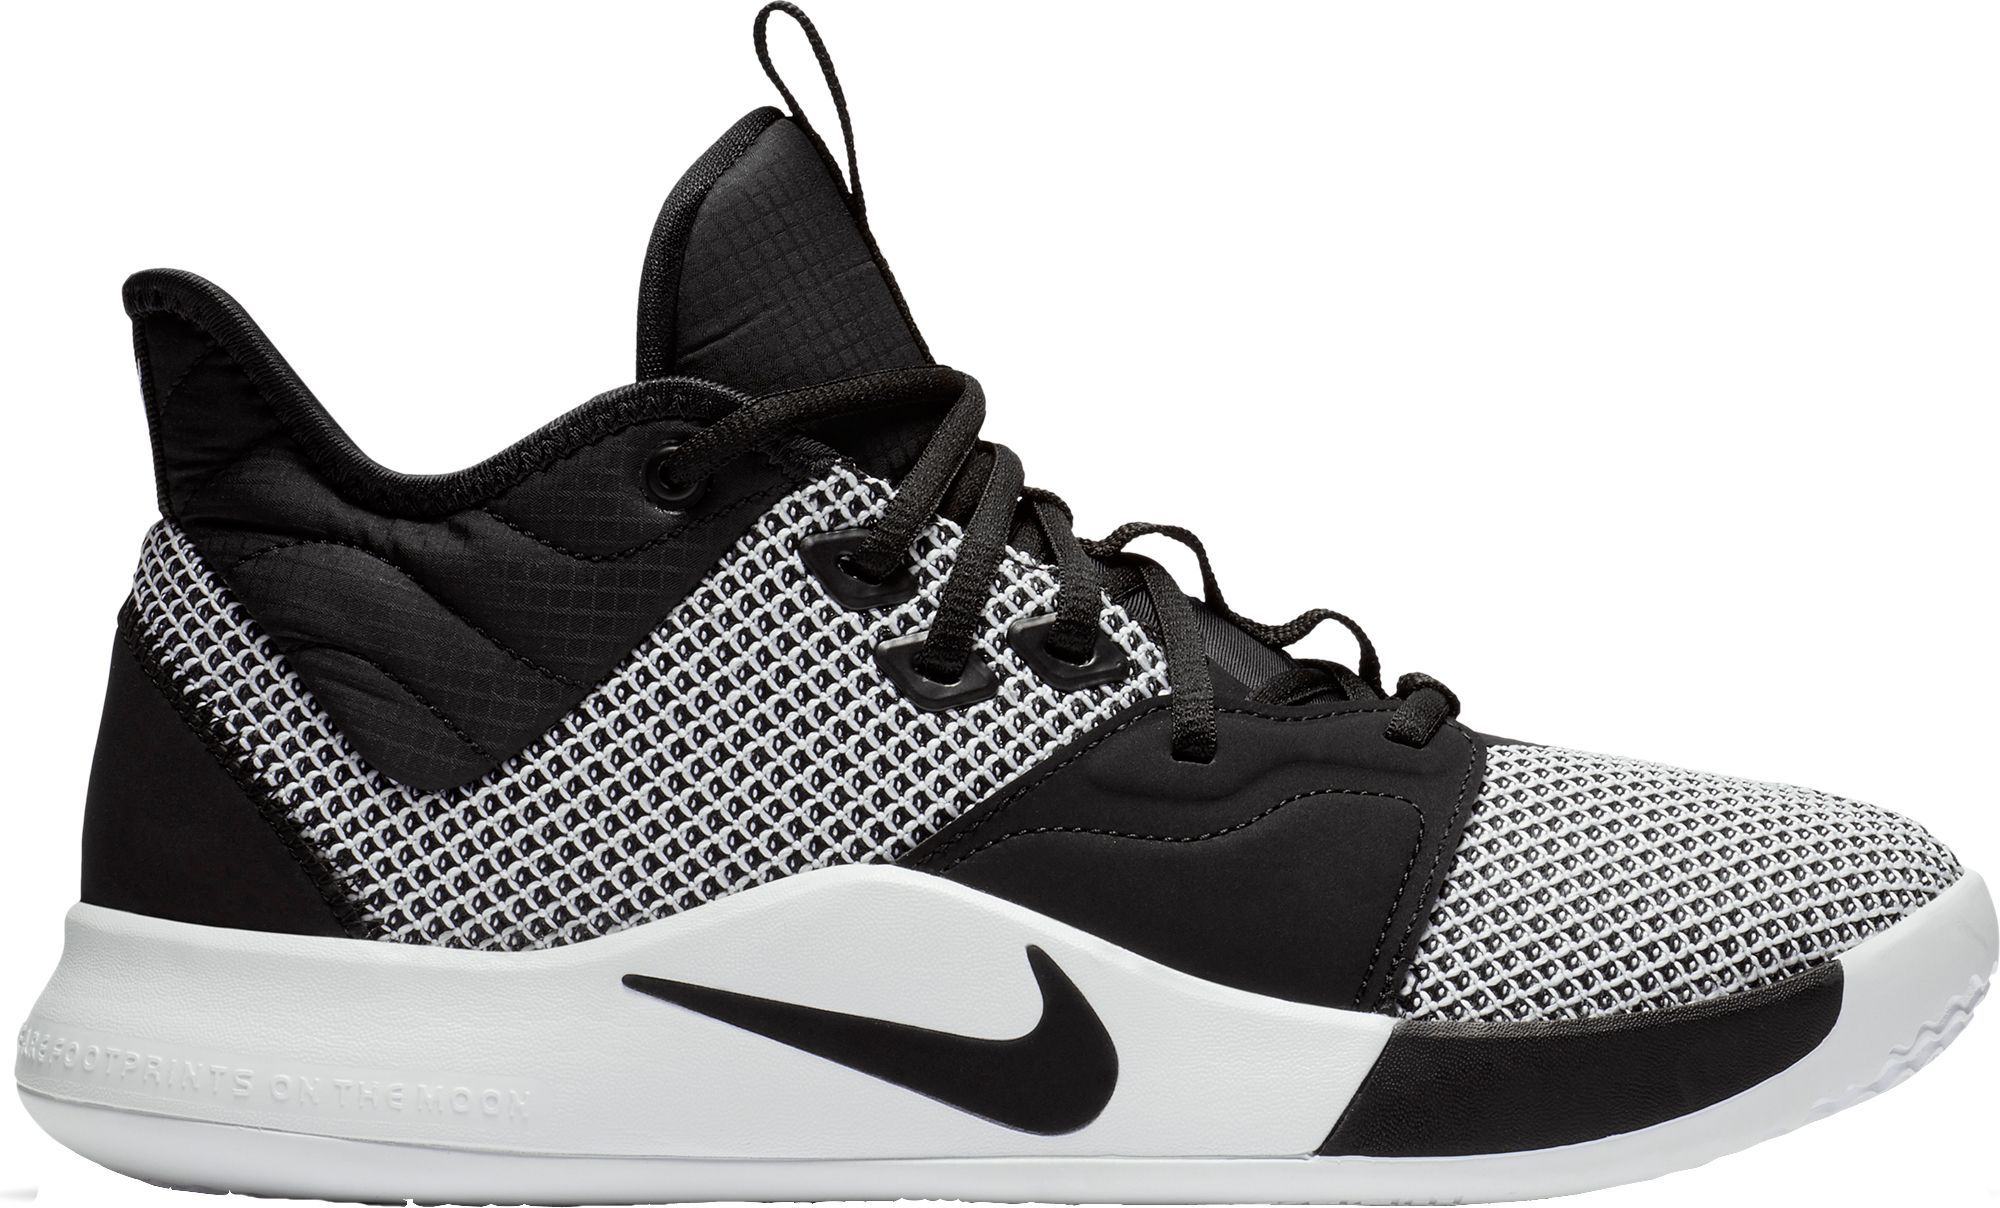 pg3 basketball shoes black and white